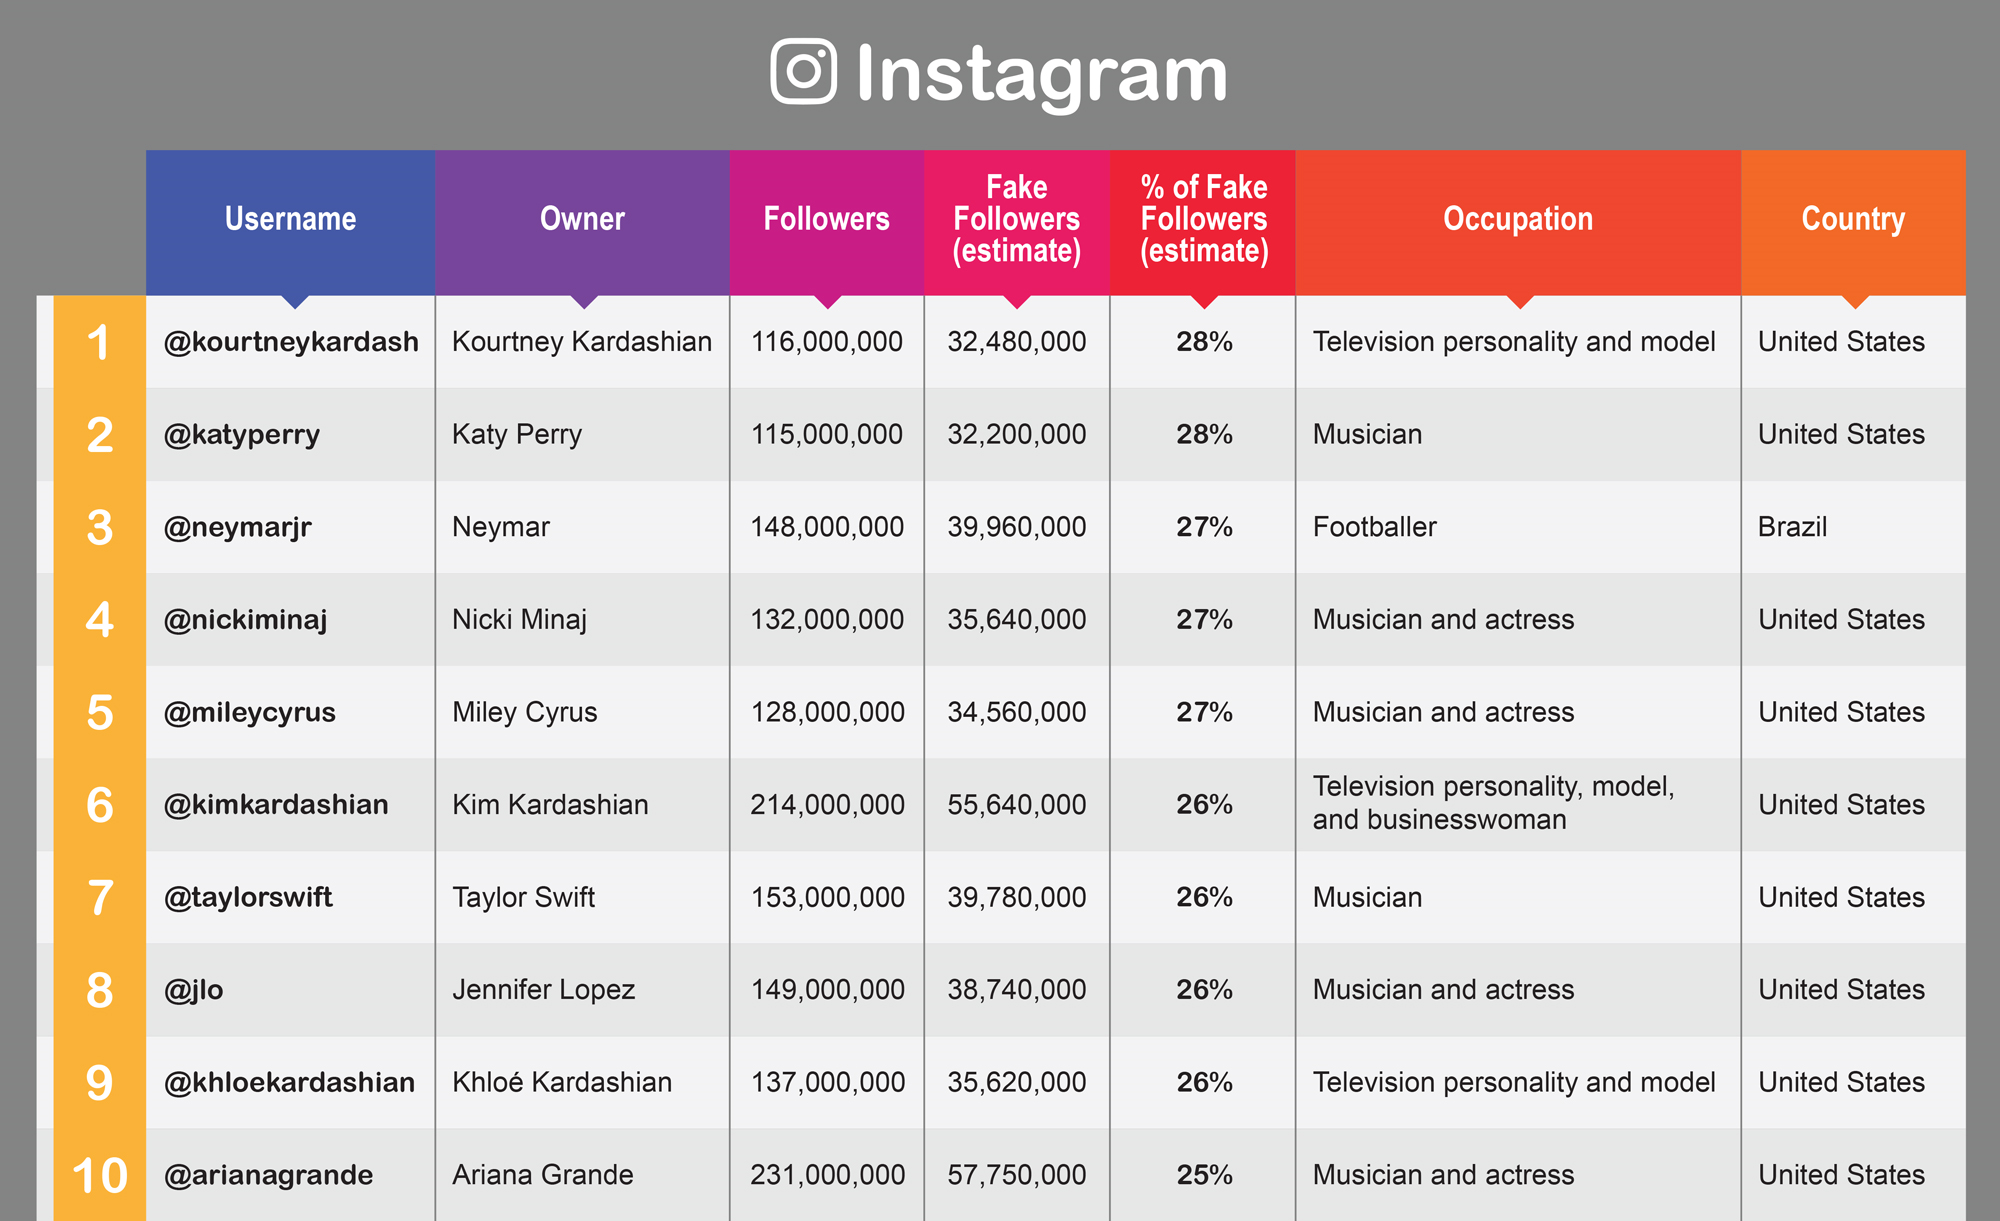 Celebrities and influencers with the most fake followers on Instagram